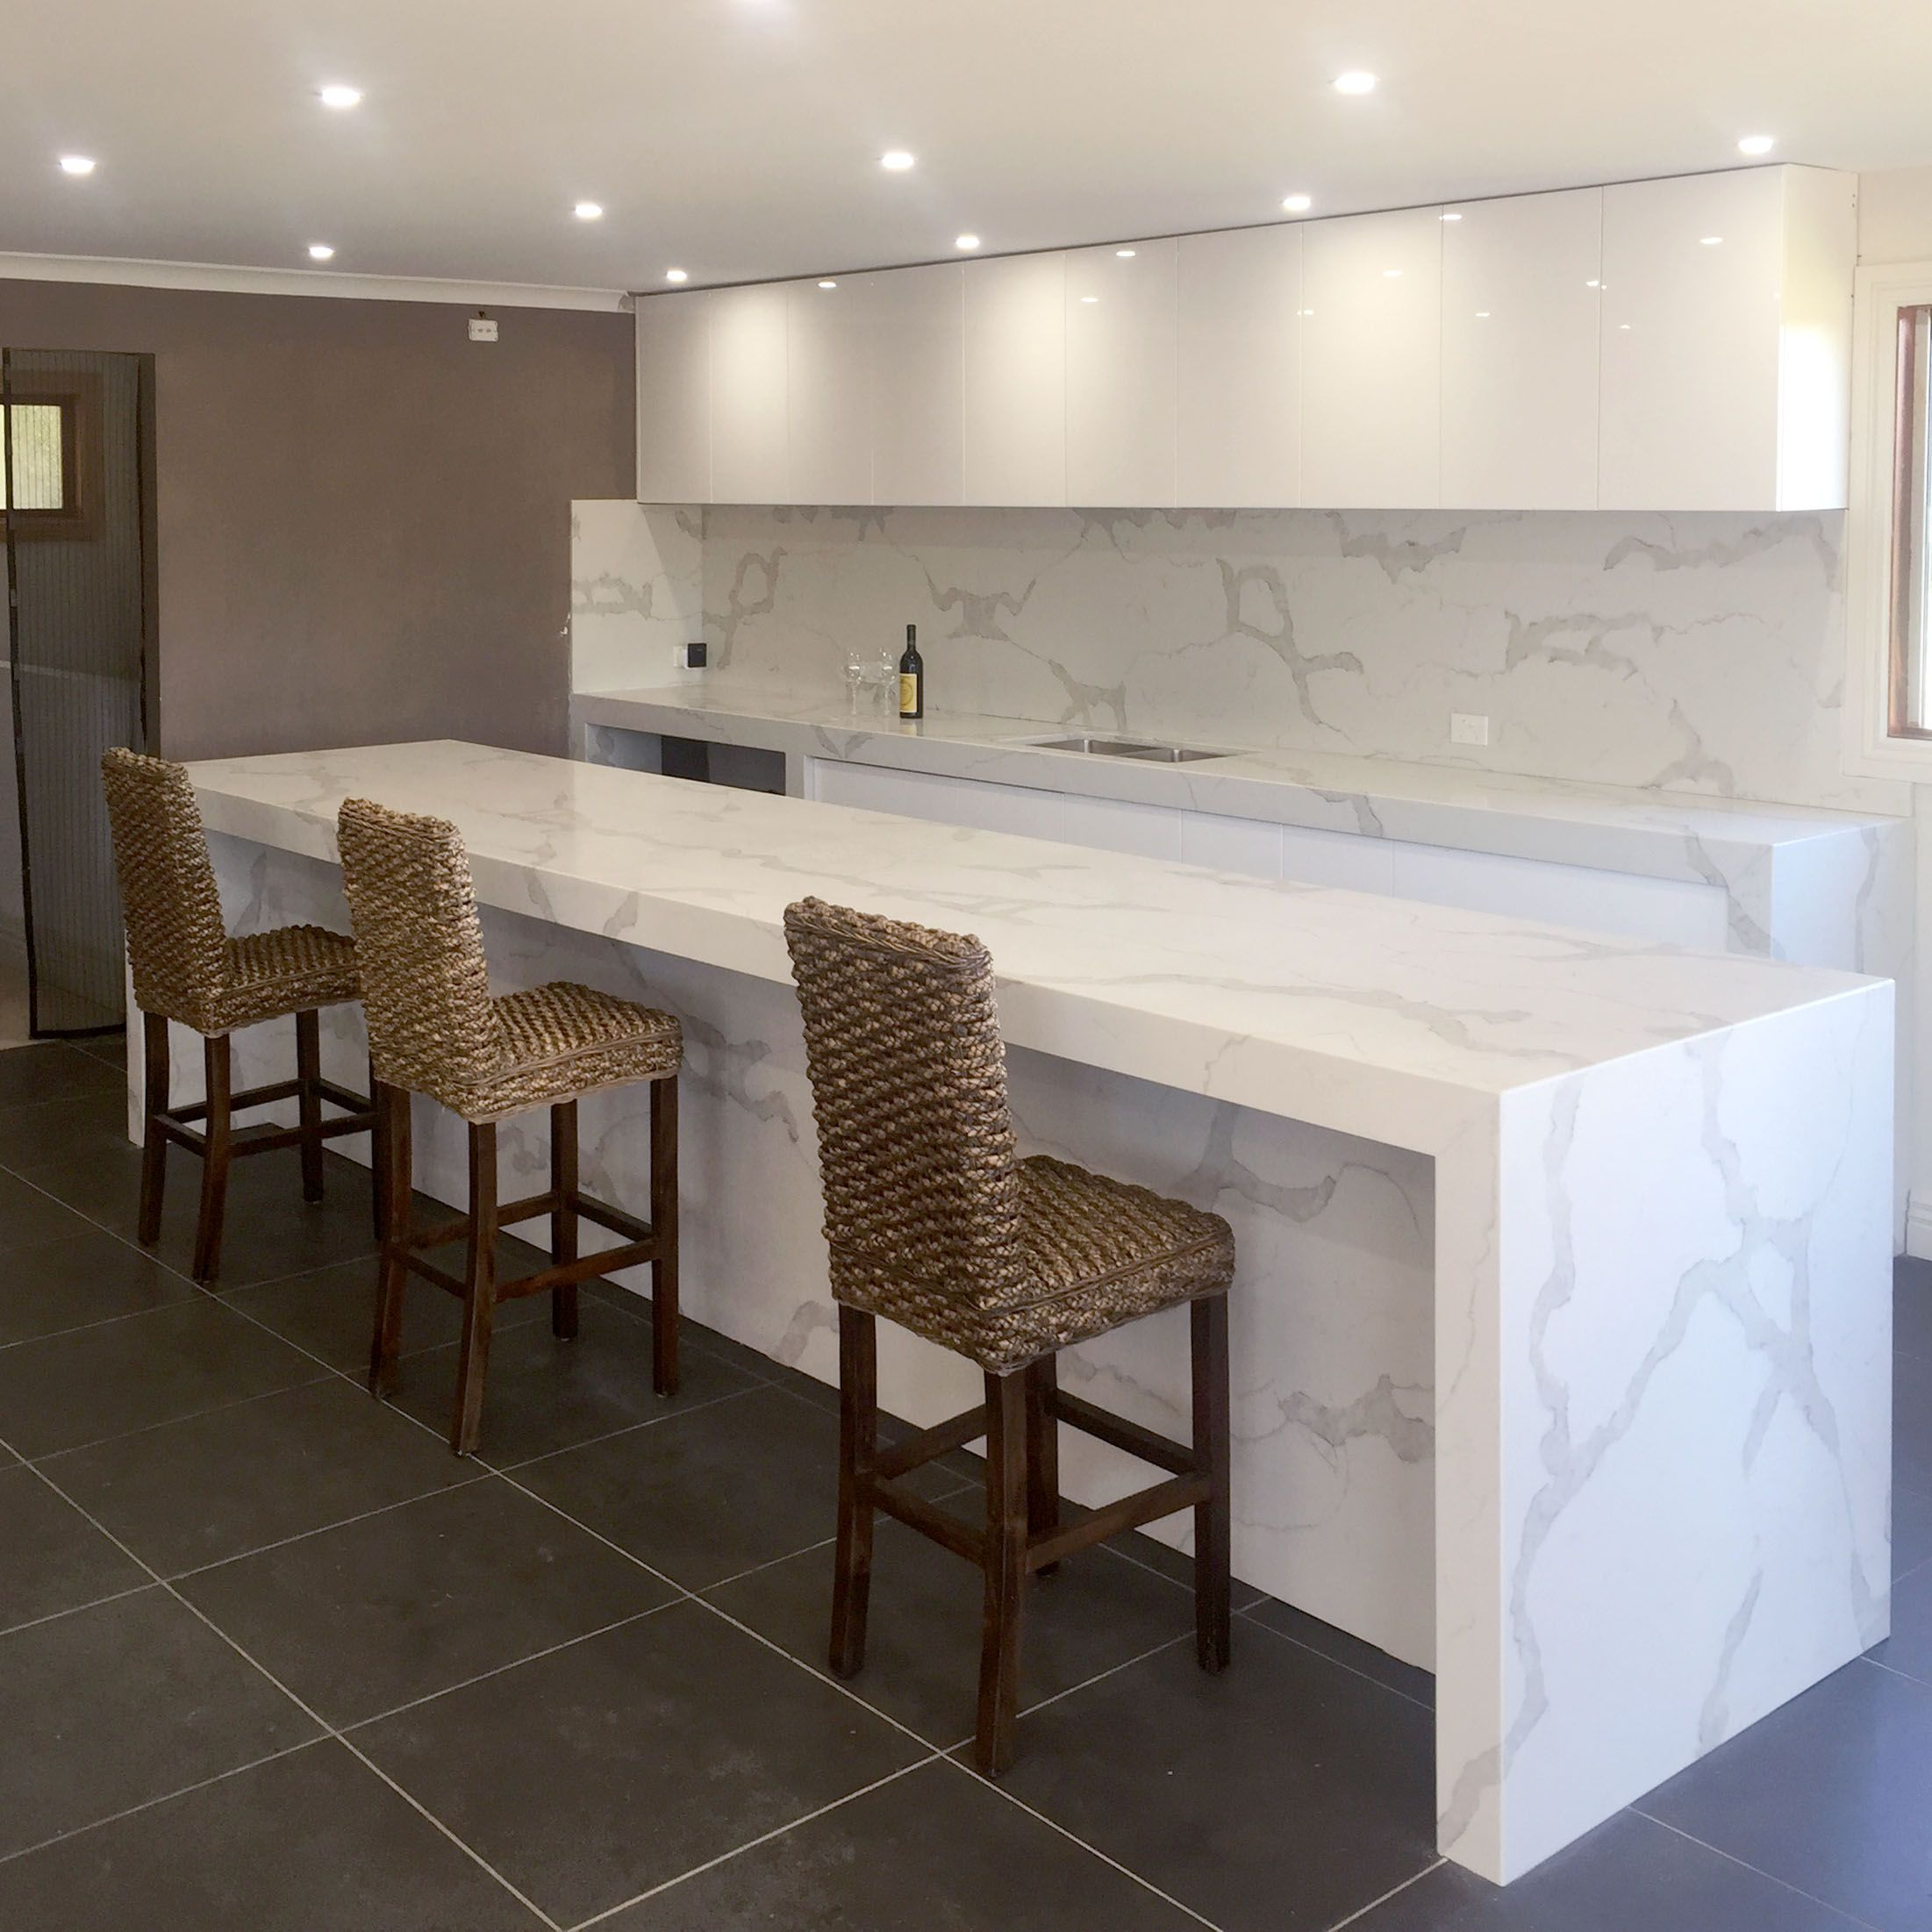 Calacatta Classique Stuns With Its Gorgeous White Marble Look And